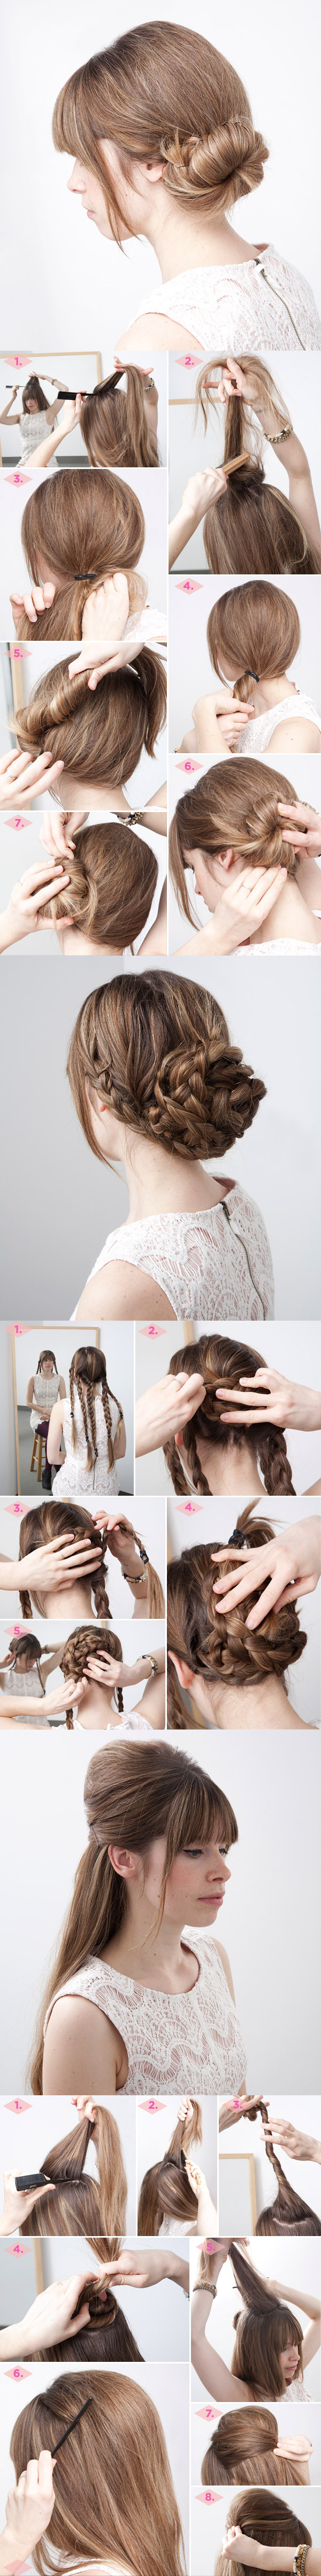 Groovy 13 Rather Simple Bun Hairstyles Tutorials For 2014 Pretty Designs Hairstyle Inspiration Daily Dogsangcom